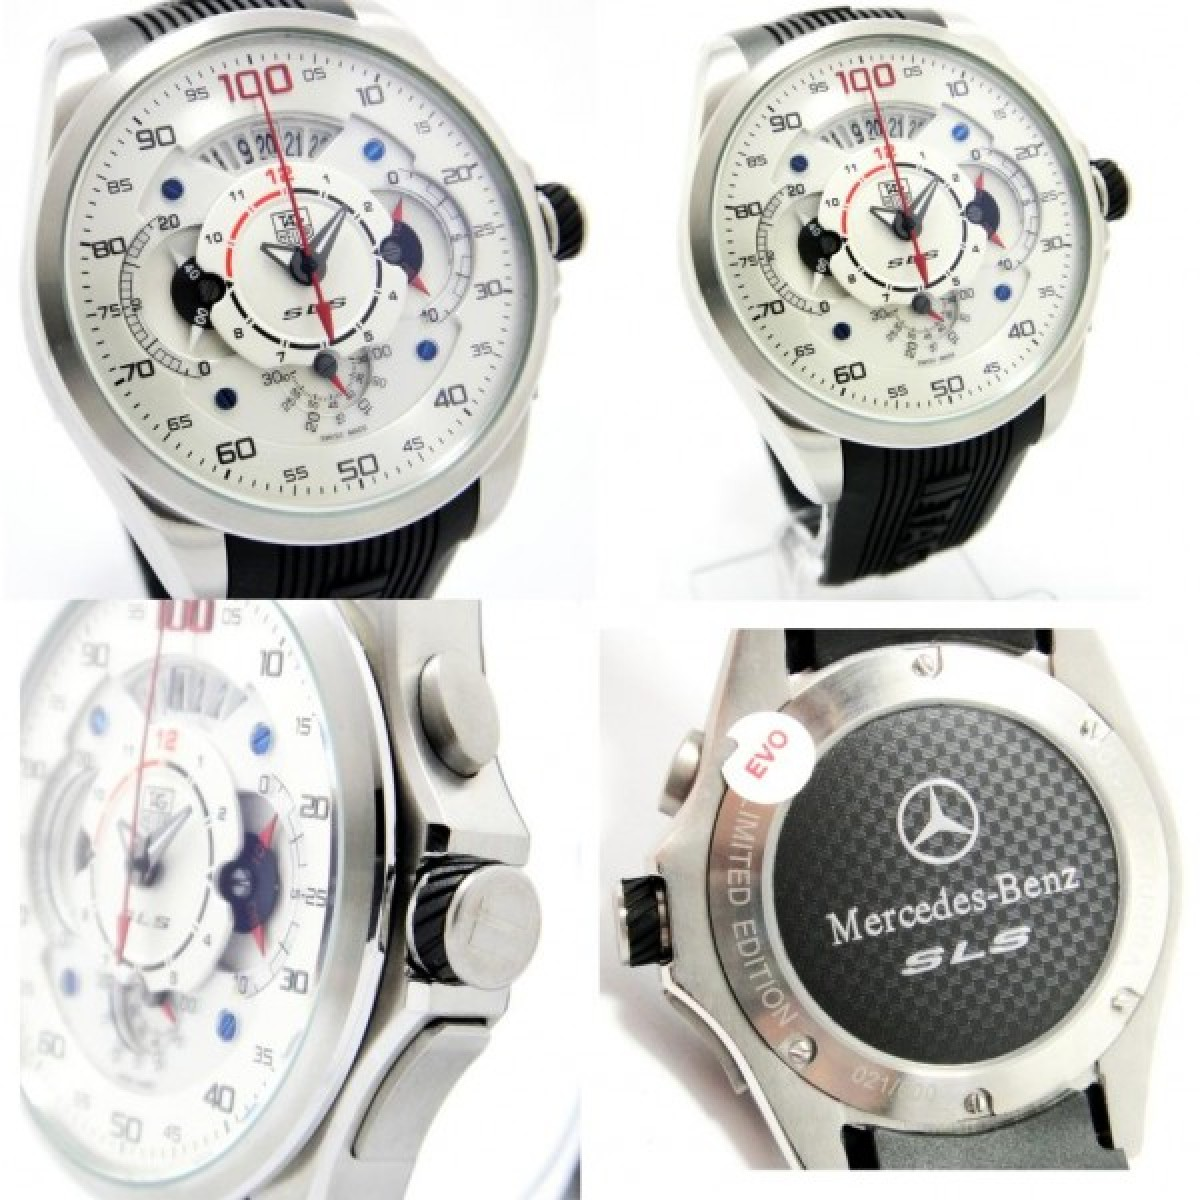 Rel gio r plica tag heuer carrera mercedez slr for Tag heuer mercedes benz sls amazon